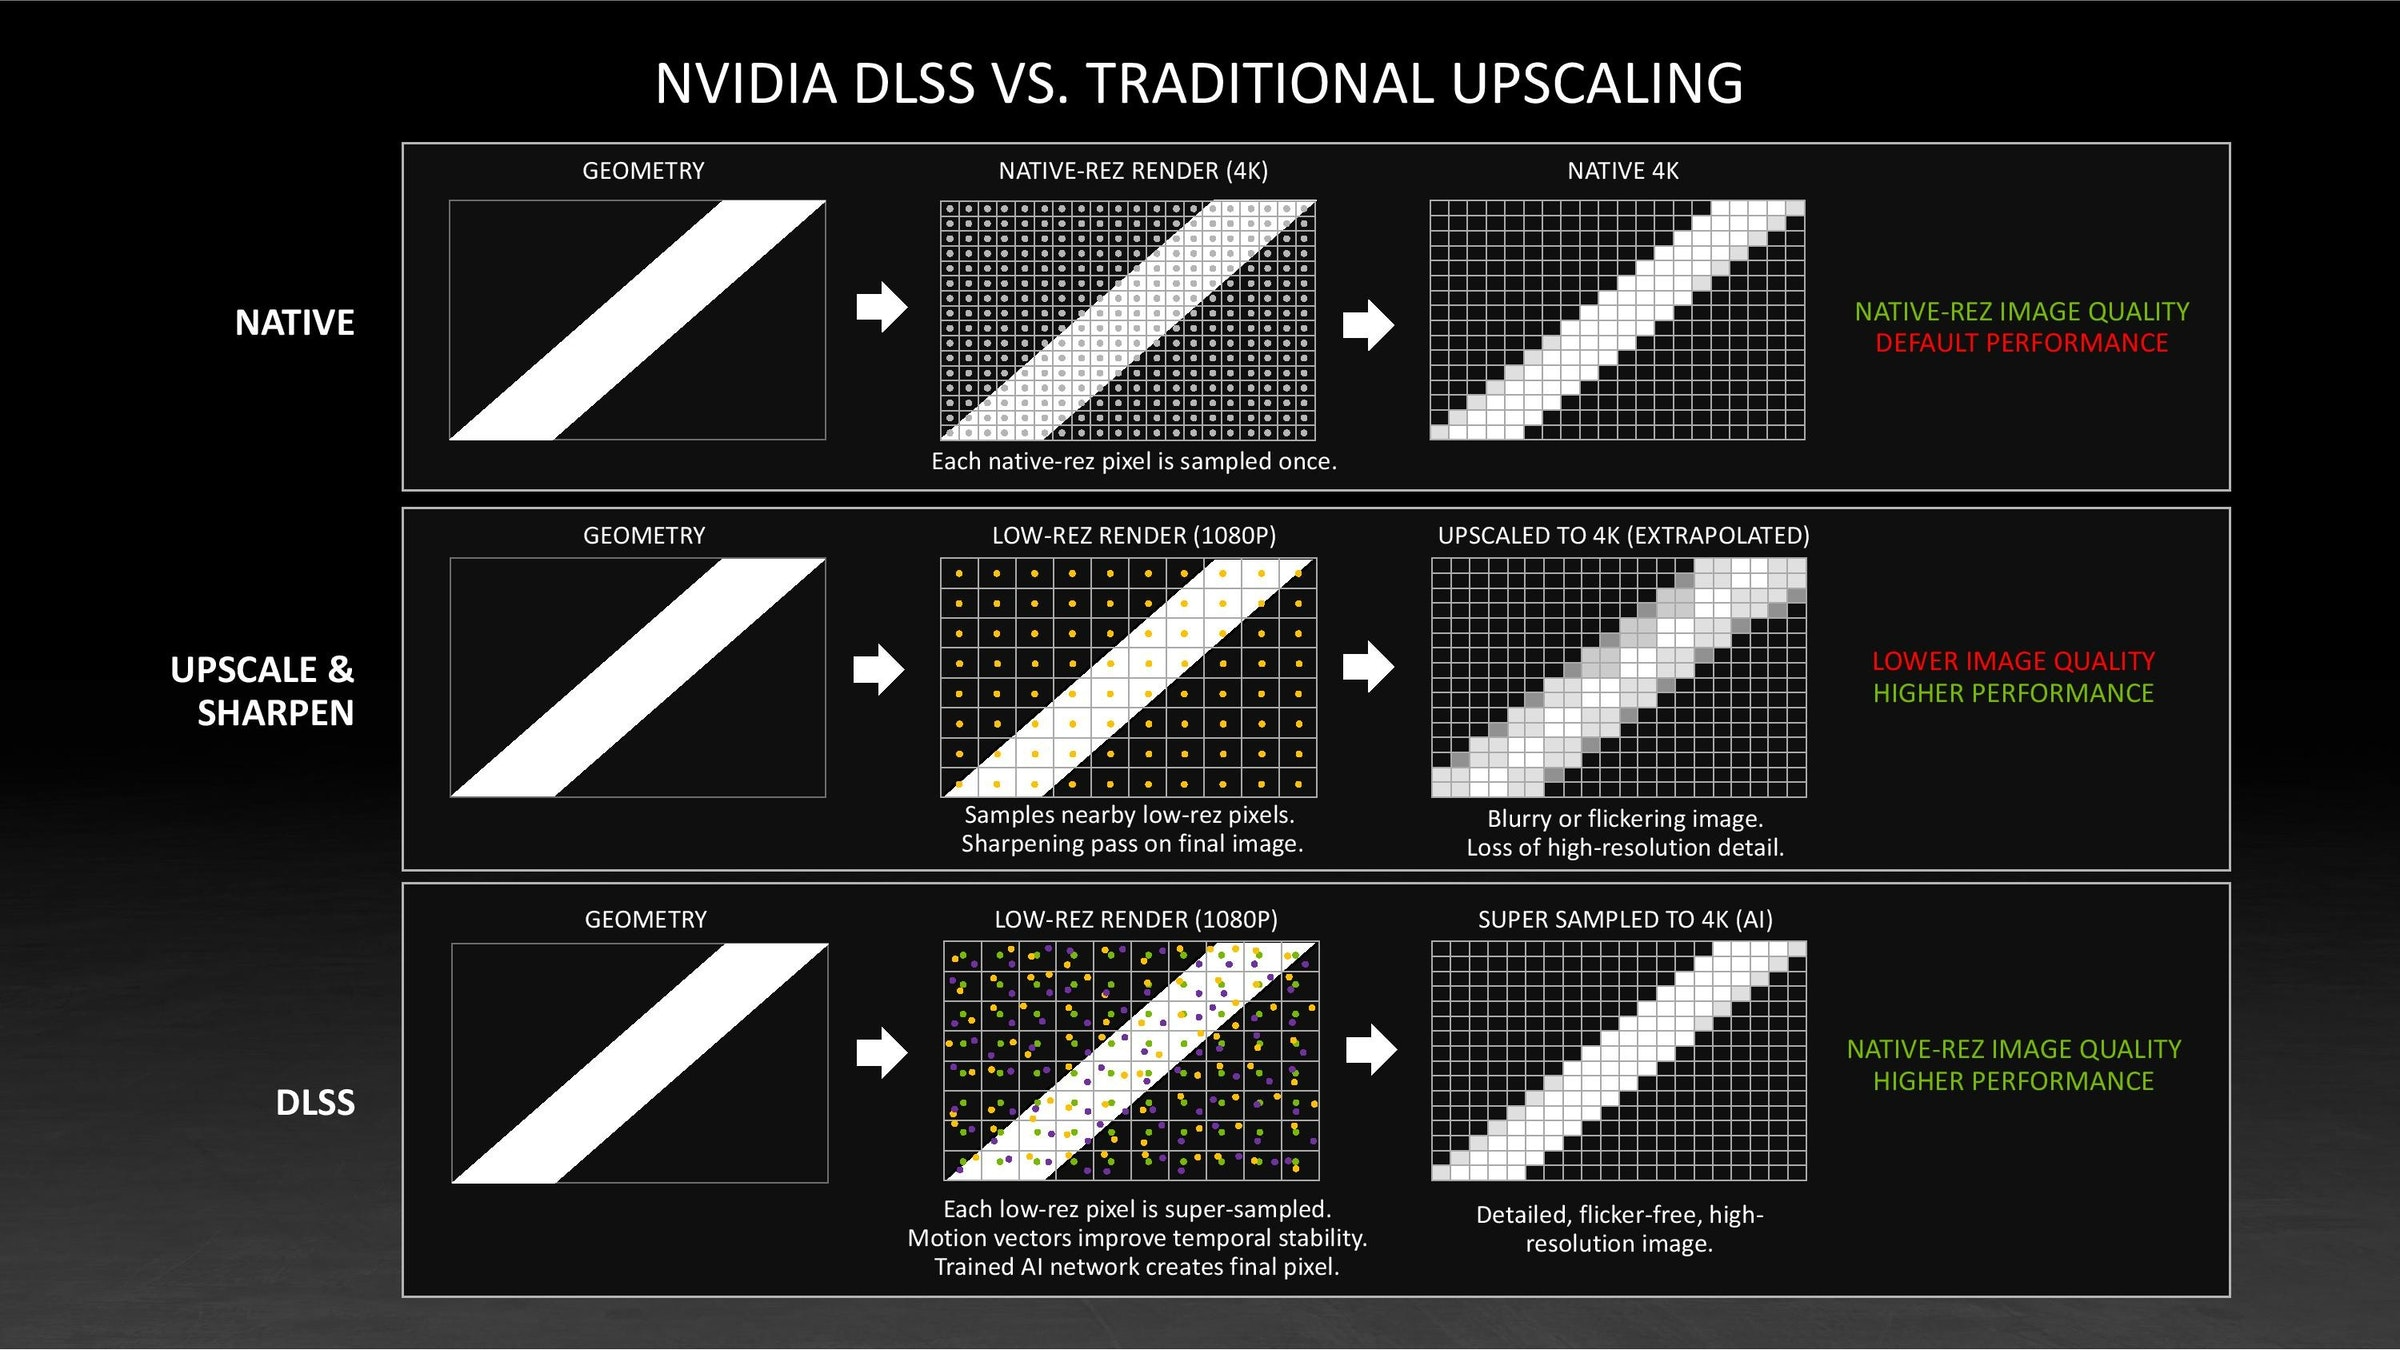 The photo mentioned NVIDIA DLSS VS. TRADITIONAL UPSCALING, GEOMETRY, NATIVE-REZ RENDER (4K), including design, product design, products, graphics, and fonts